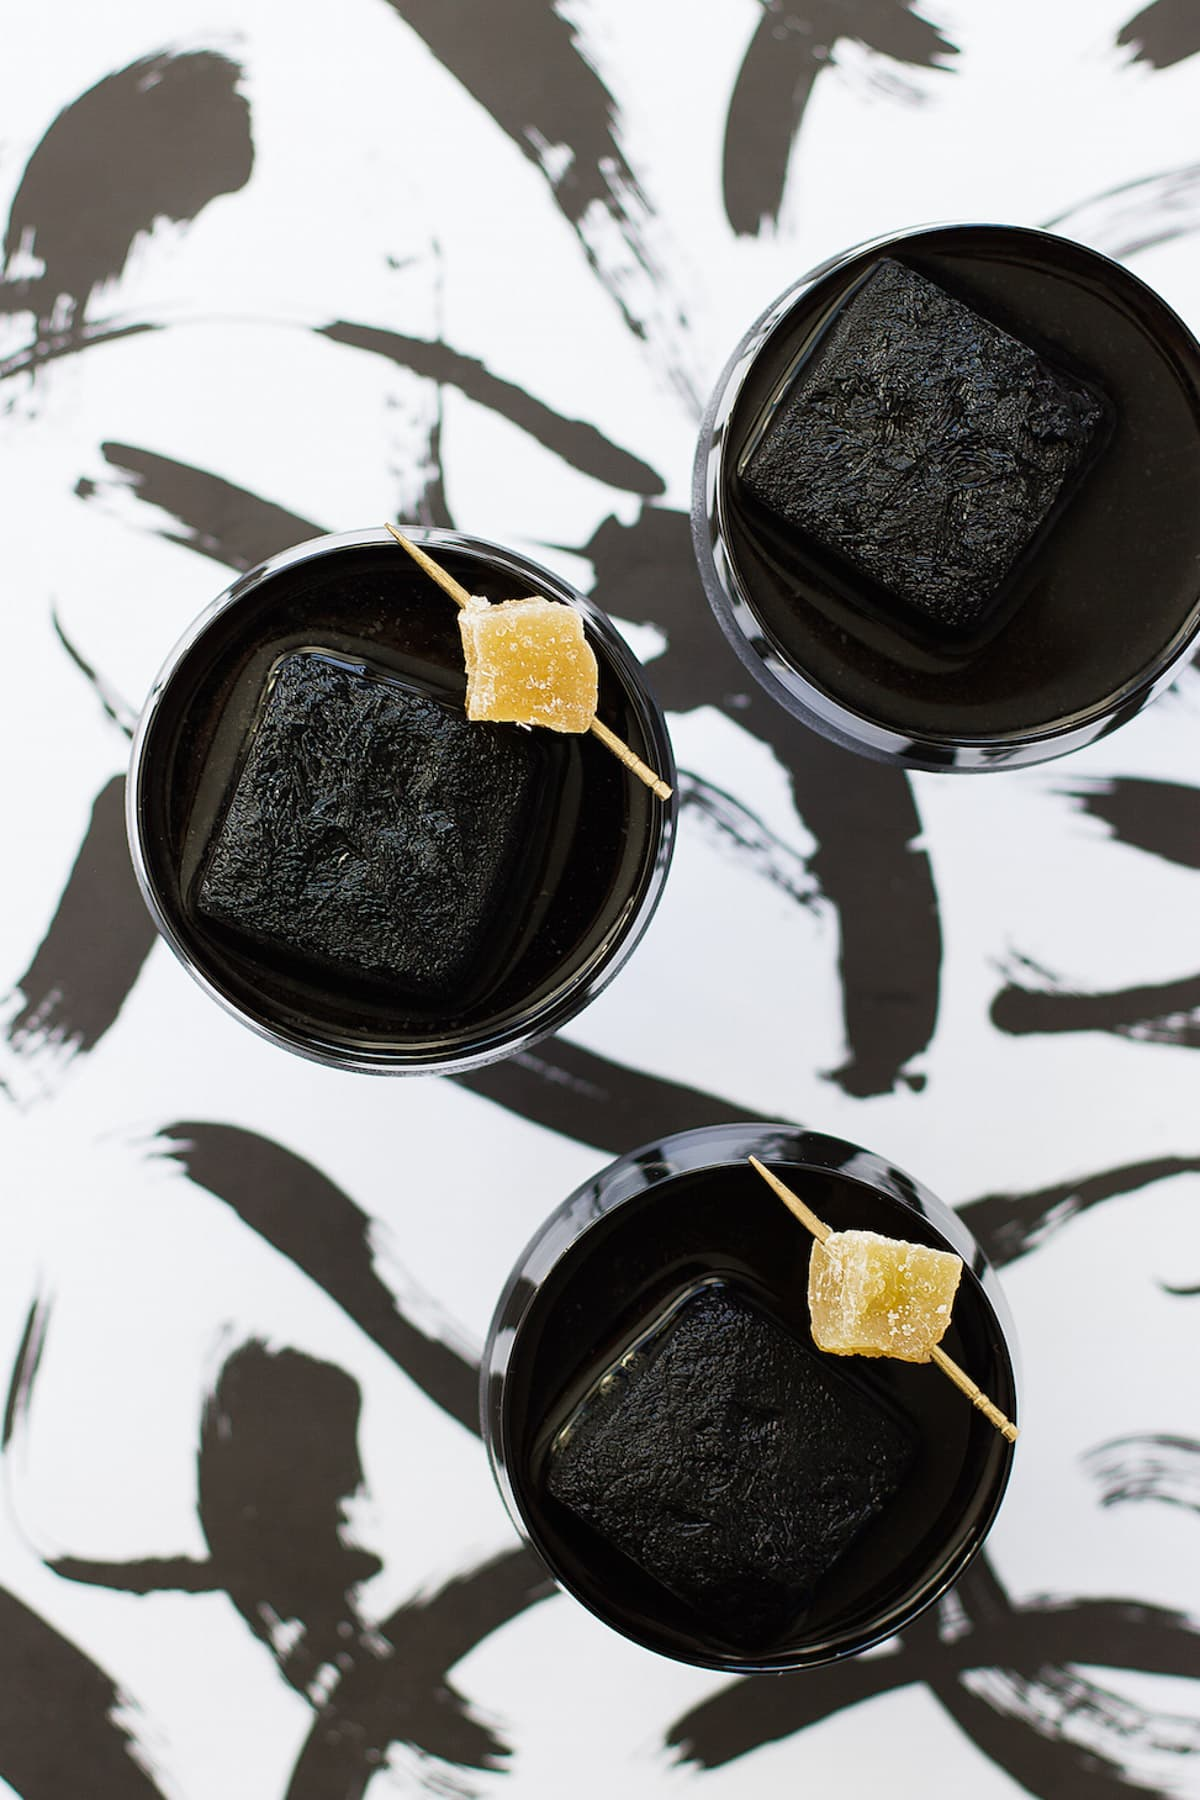 creepy cocktails -- Detoxing Activated Charcoal Cocktail Recipe by top Houston Lifestyle Blogger Ashley Rose of Sugar and Cloth #recipe #cocktail #halloween #detox #charcoal